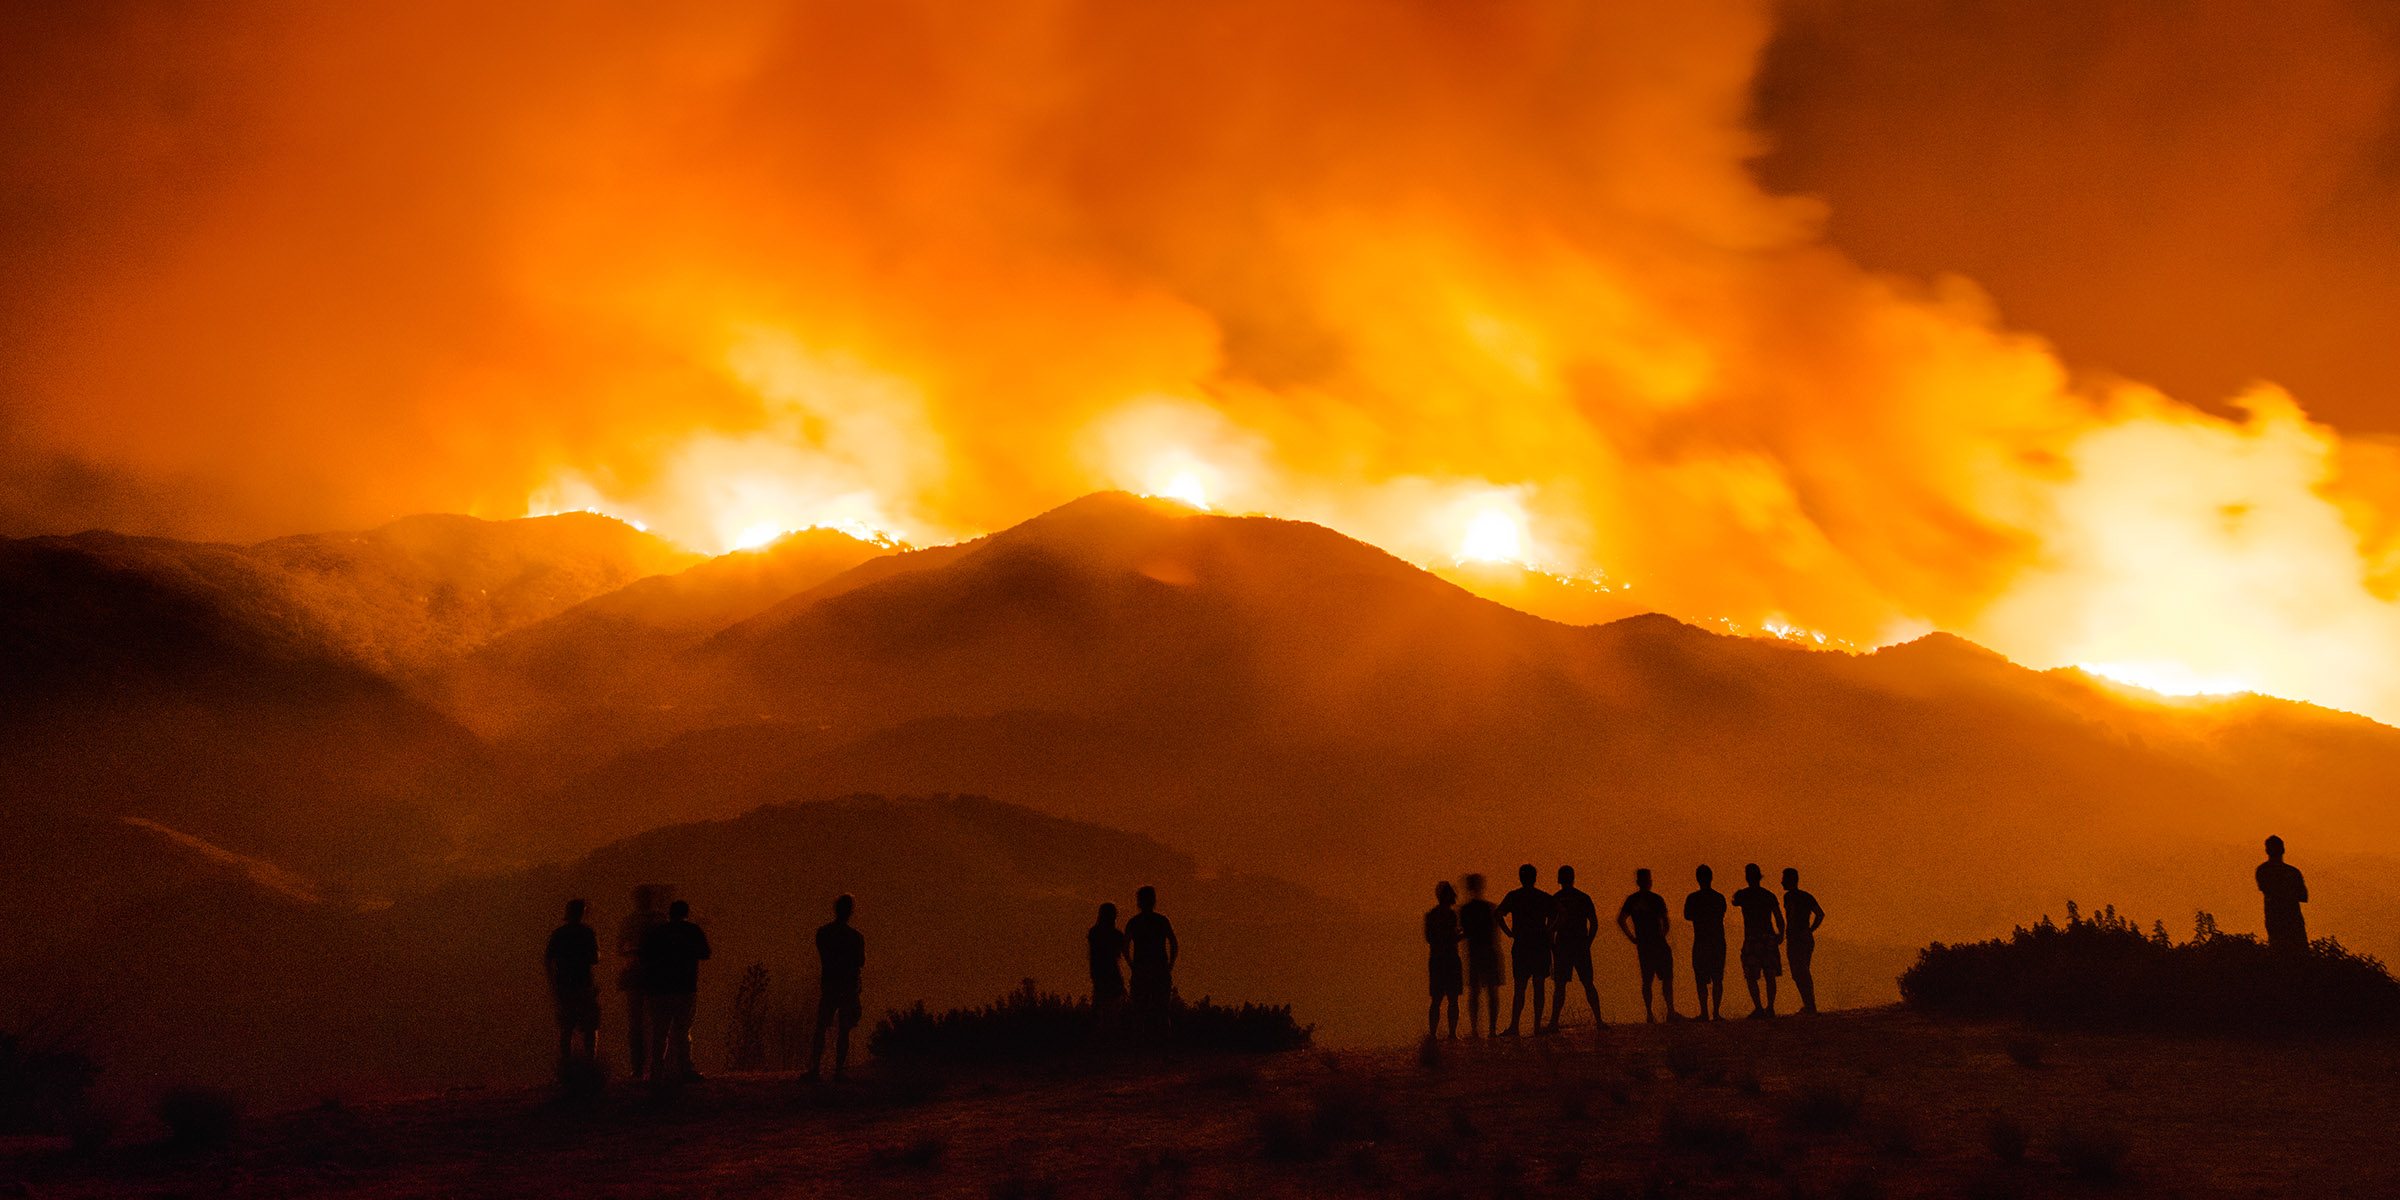 La Tuna Canyon Fire, by Kevin Cooley, 2017. Archival pigment print, 30 x 38½ and 40 x 51½ inches. A crowd gathers in the Los Angeles neighborhood of Tujunga to watch the La Tuna Canyon fire burn in the Verdugo Mountains north of Burbank. © Kevin Cooley, c